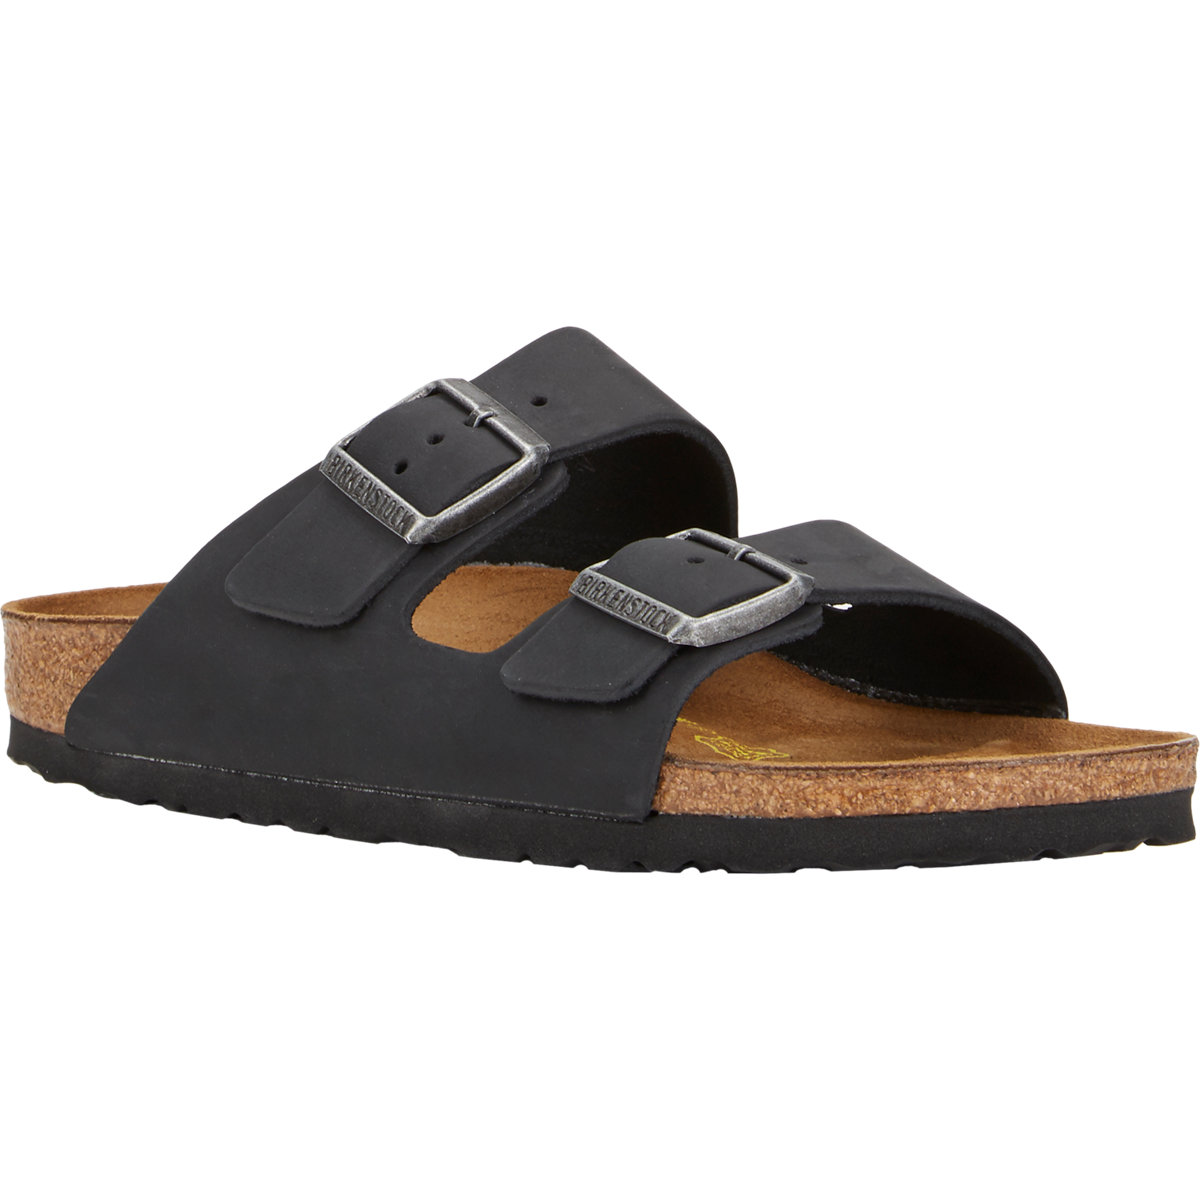 Birkenstock Arizona Sandals at Barneys.com